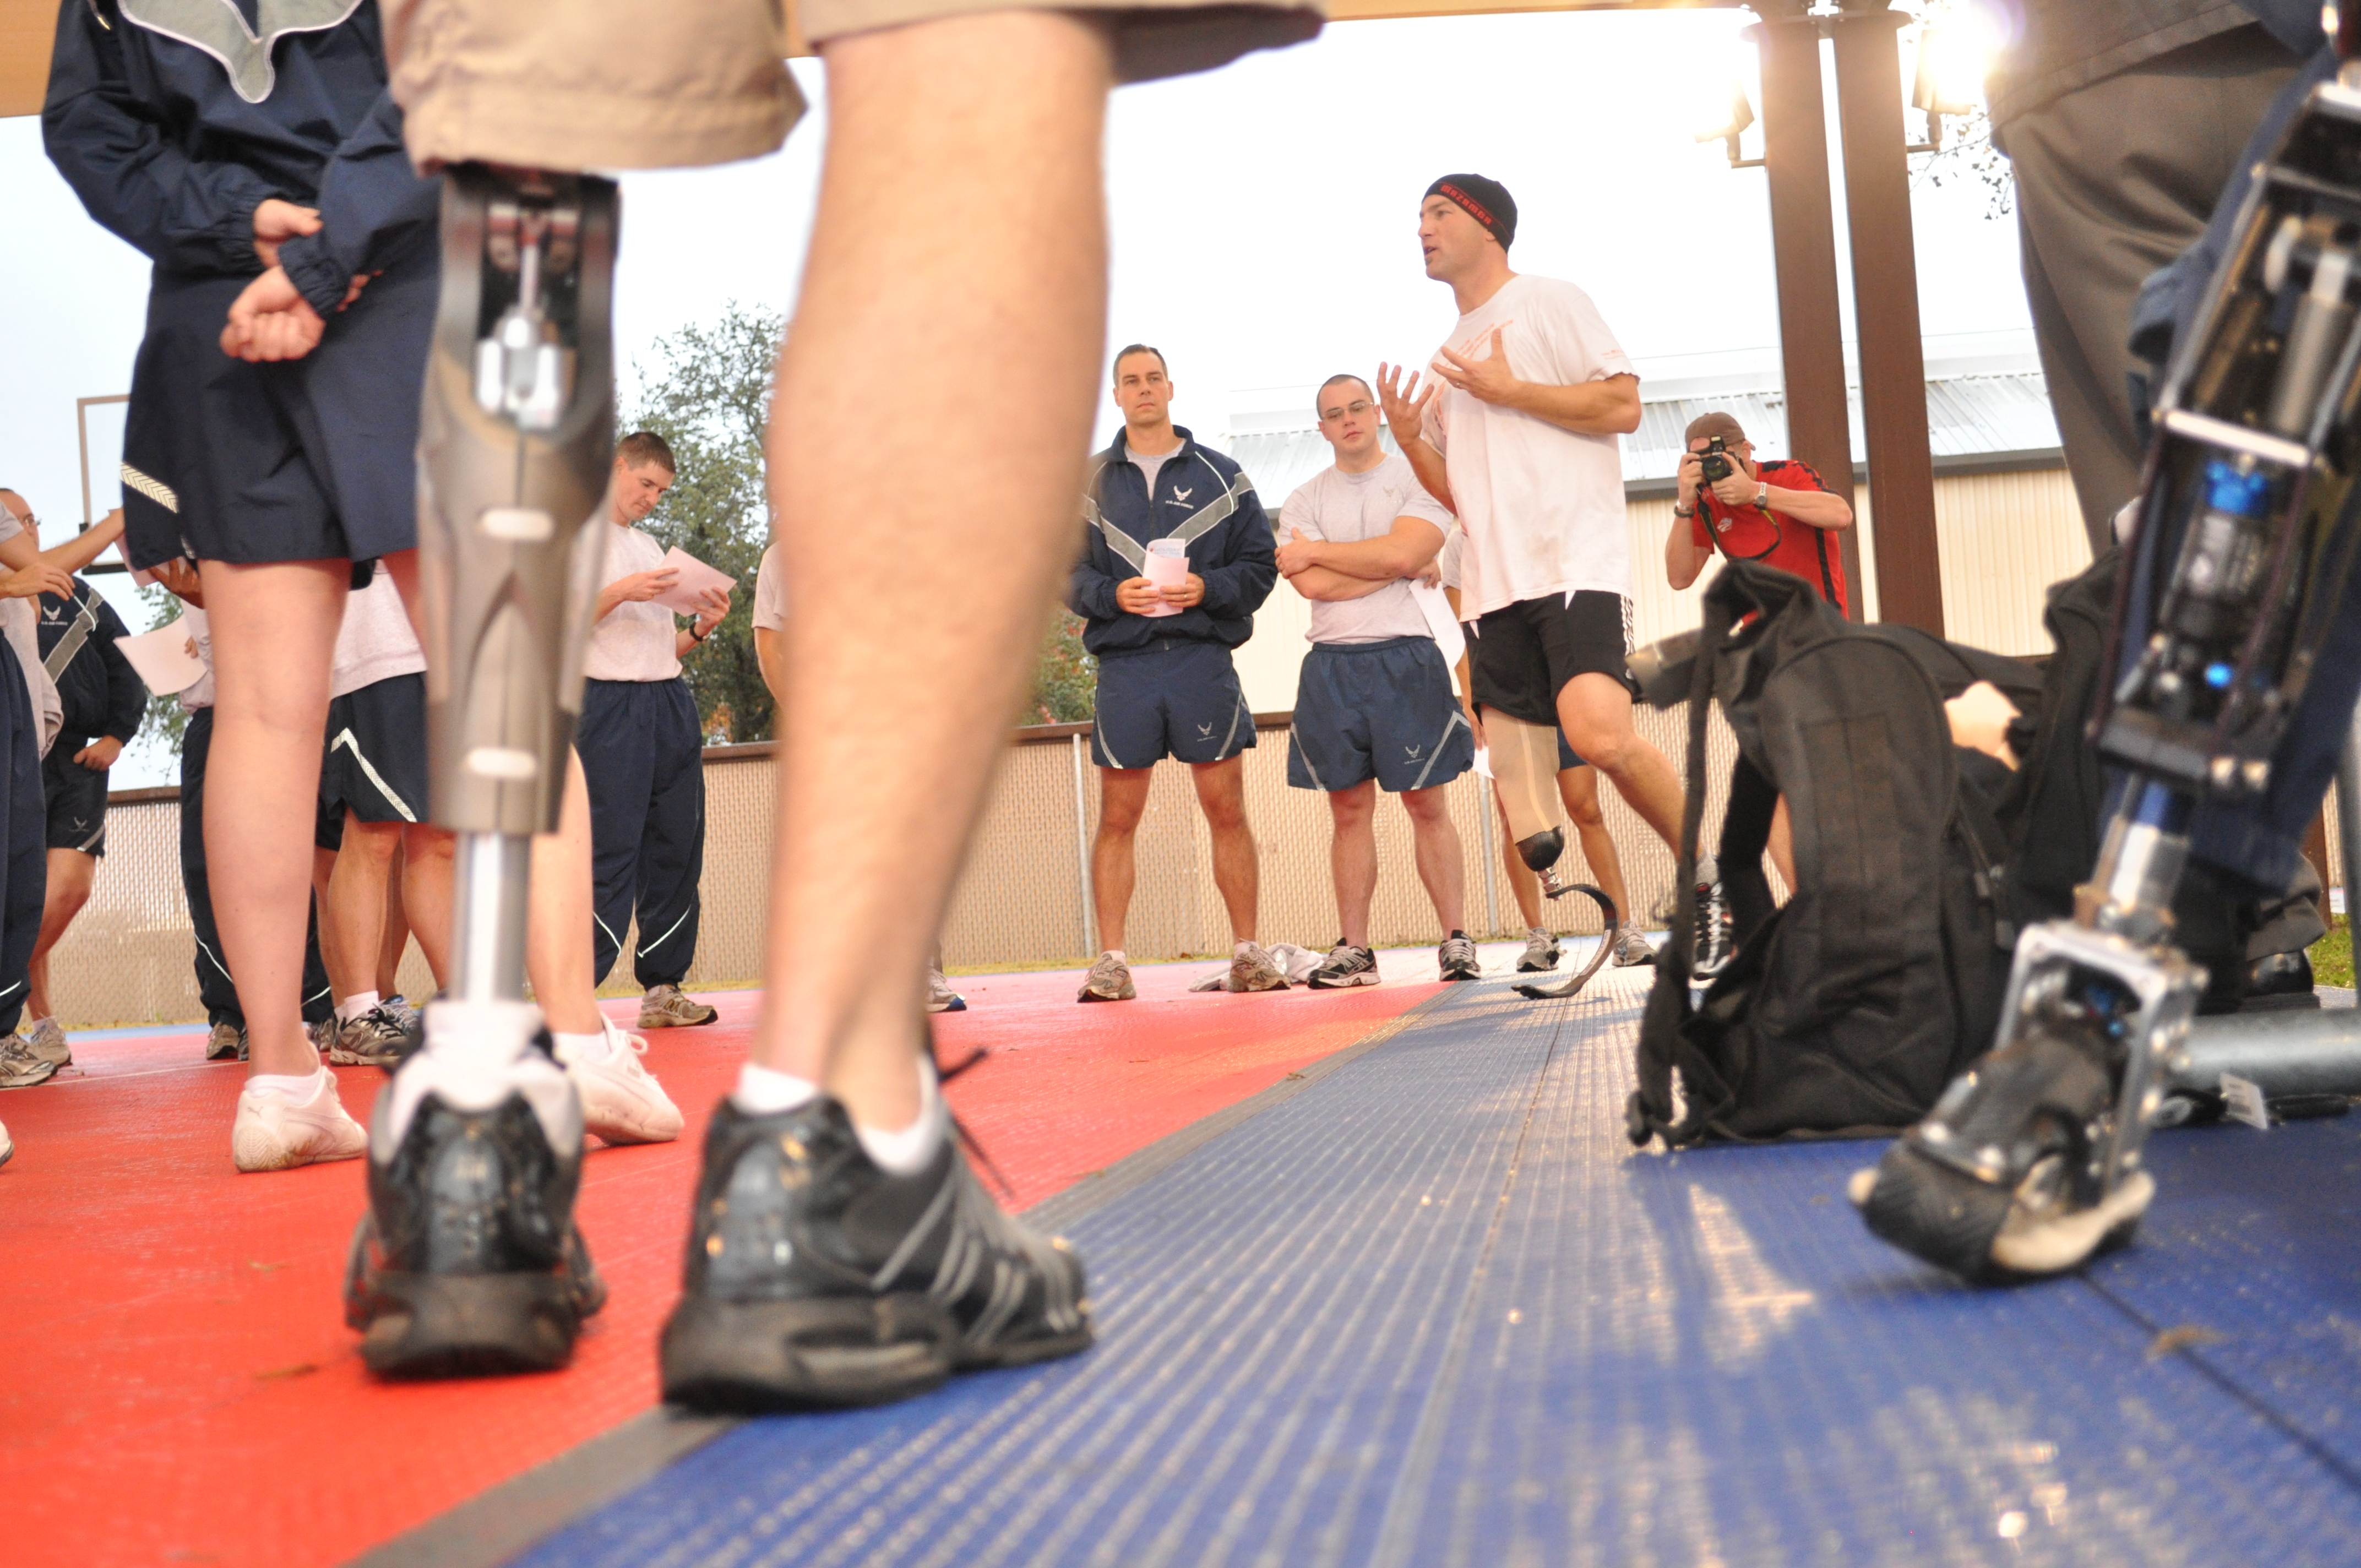 American300 Warrior Tour brings 'never quit' message to 24th